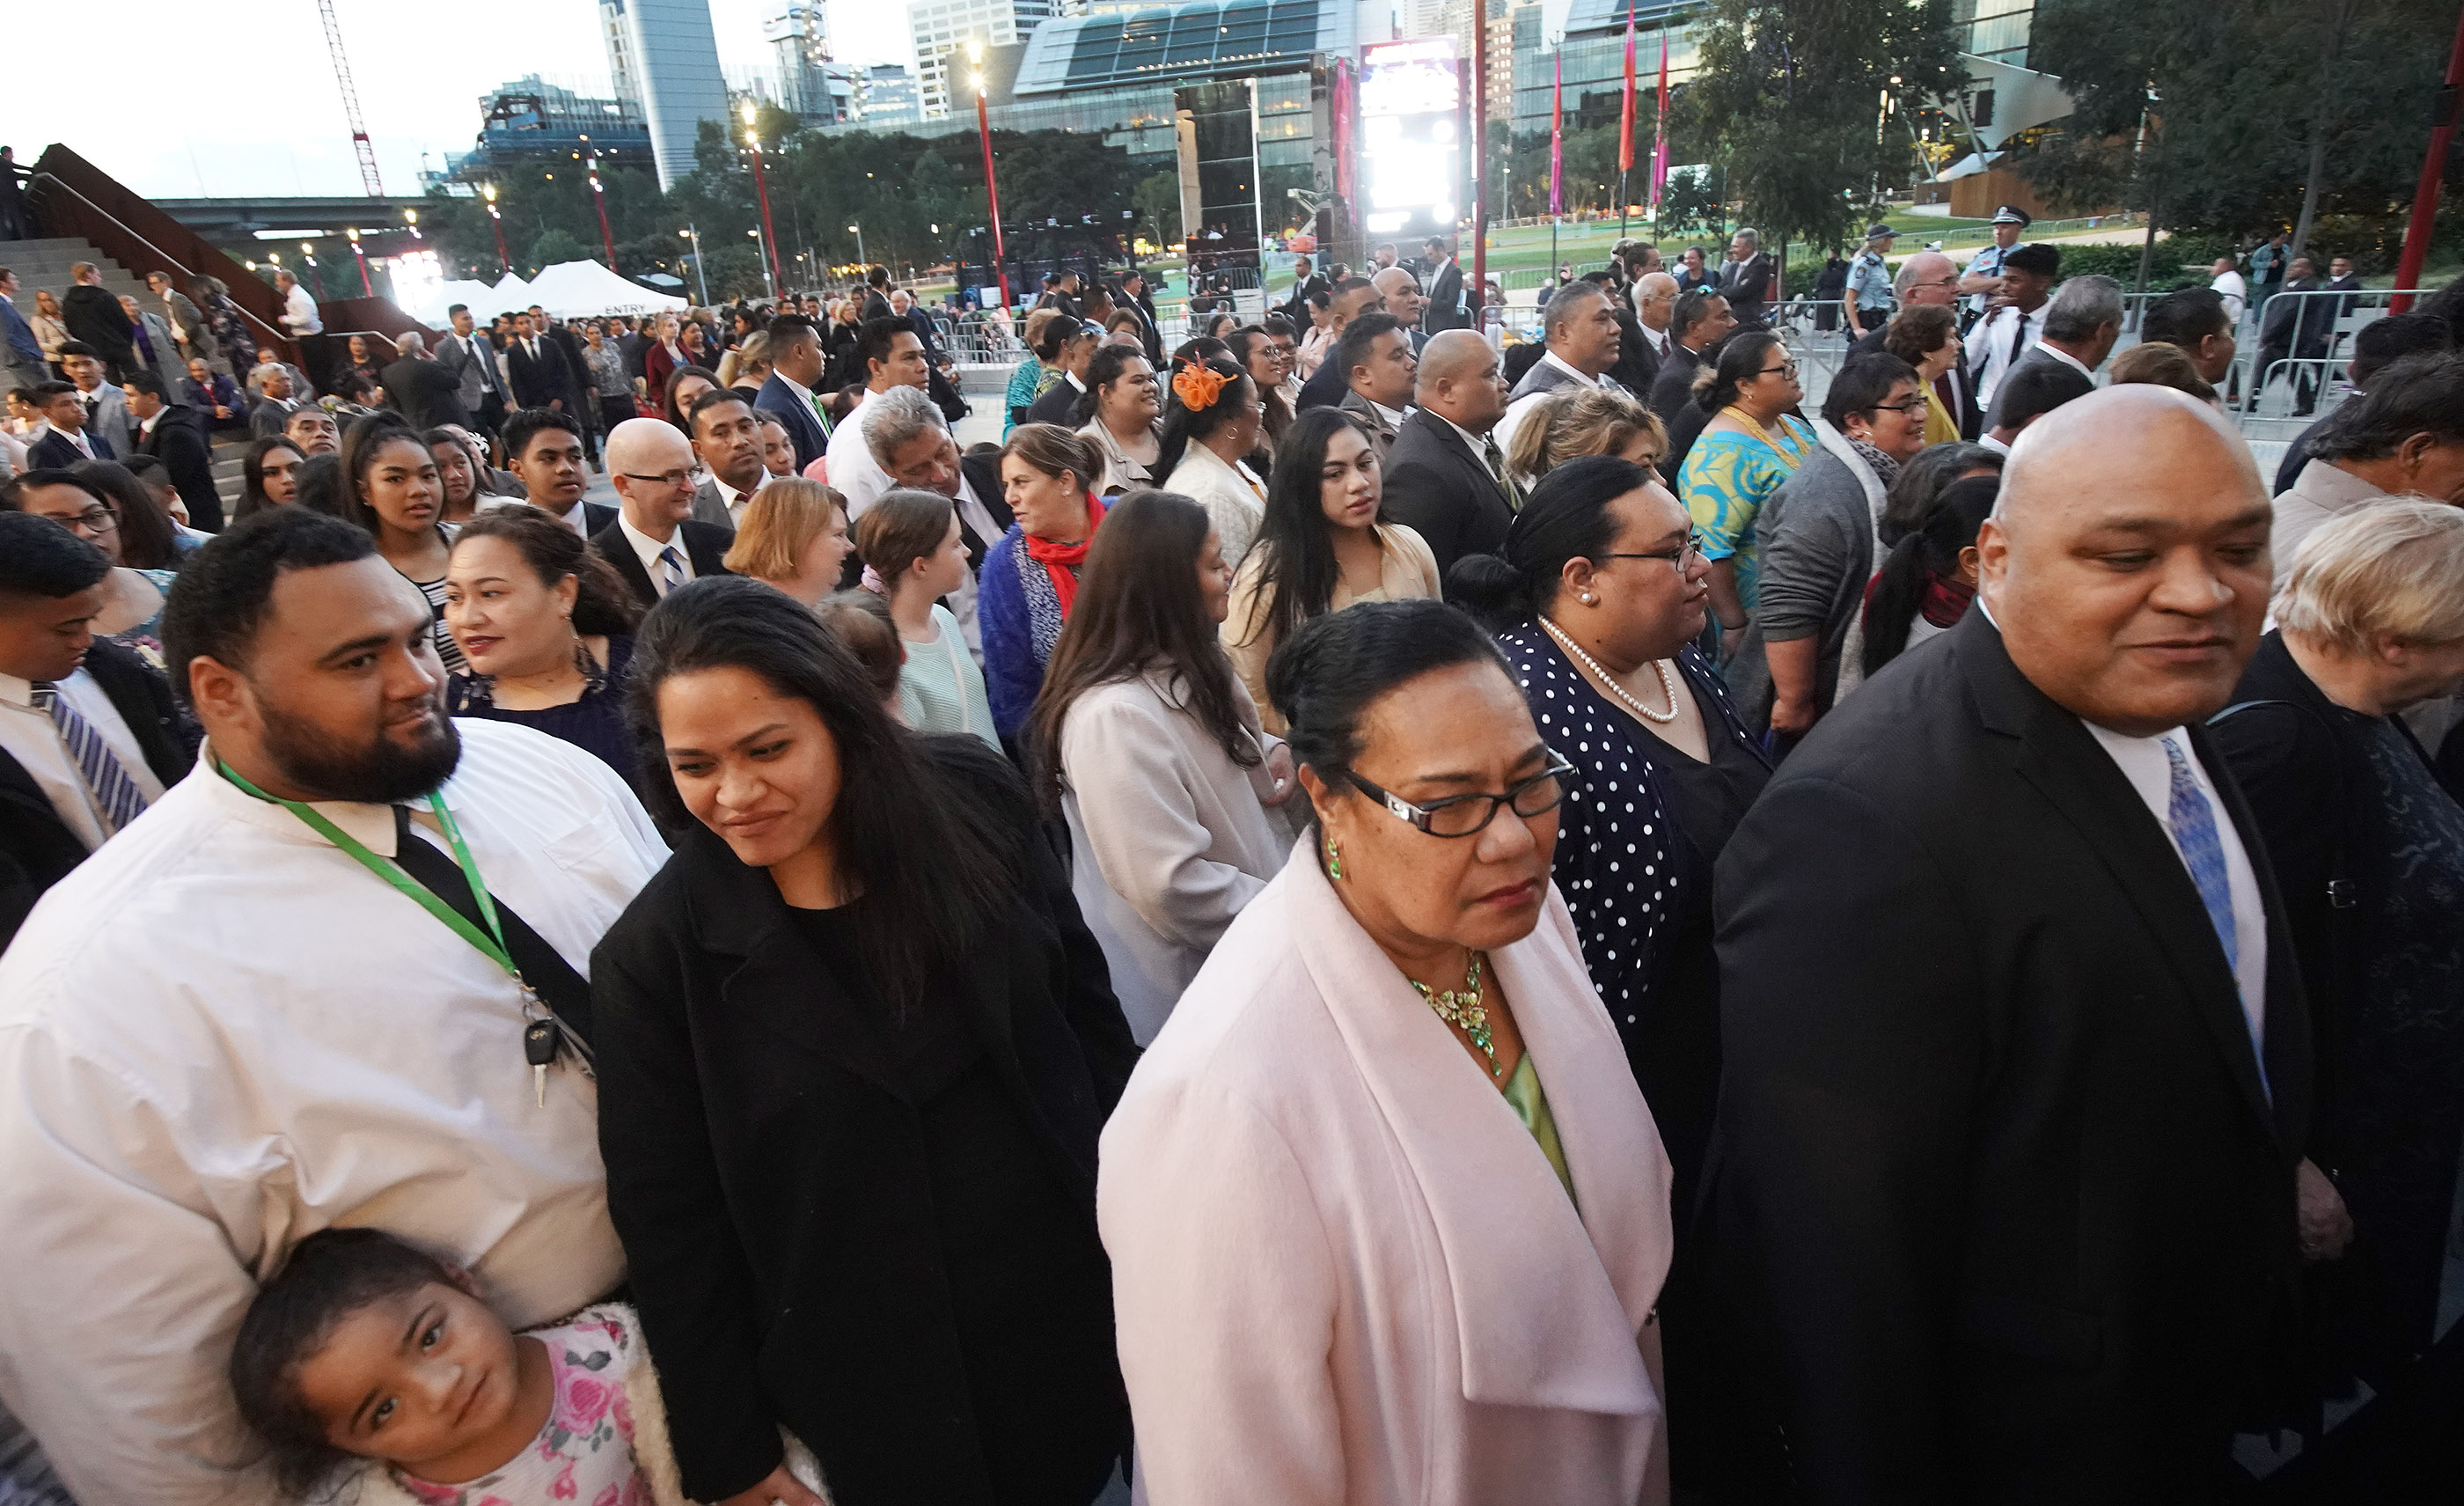 Attendees enter the International Conference Center to hear President Russell M. Nelson of The Church of Jesus Christ of Latter-day Saints on May 19, 2019, in Sydney, Australia.